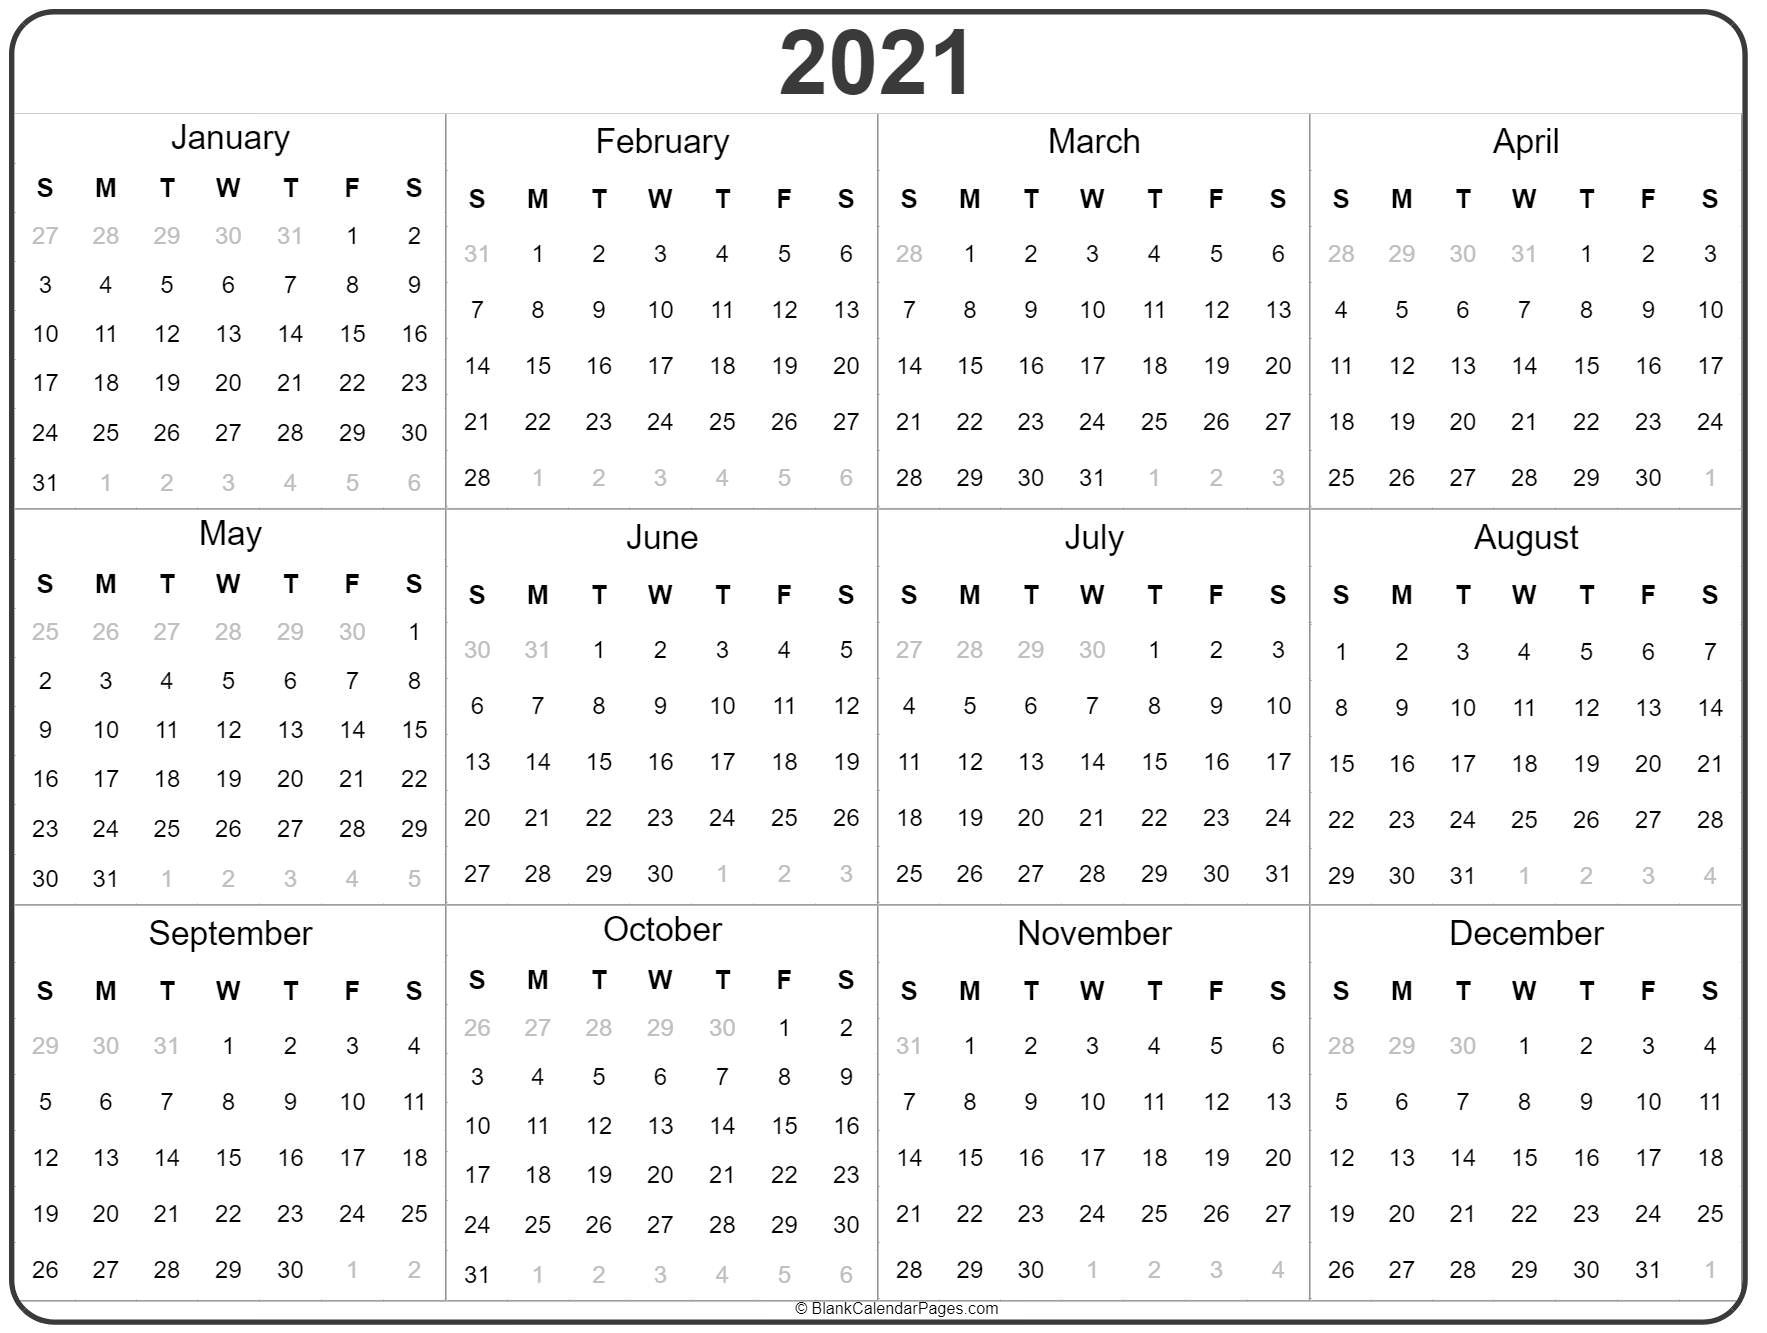 Calendar To Print 2021 Free All Months | Free Printable with regard to Printfree Calendar 2021 With Date Boxes